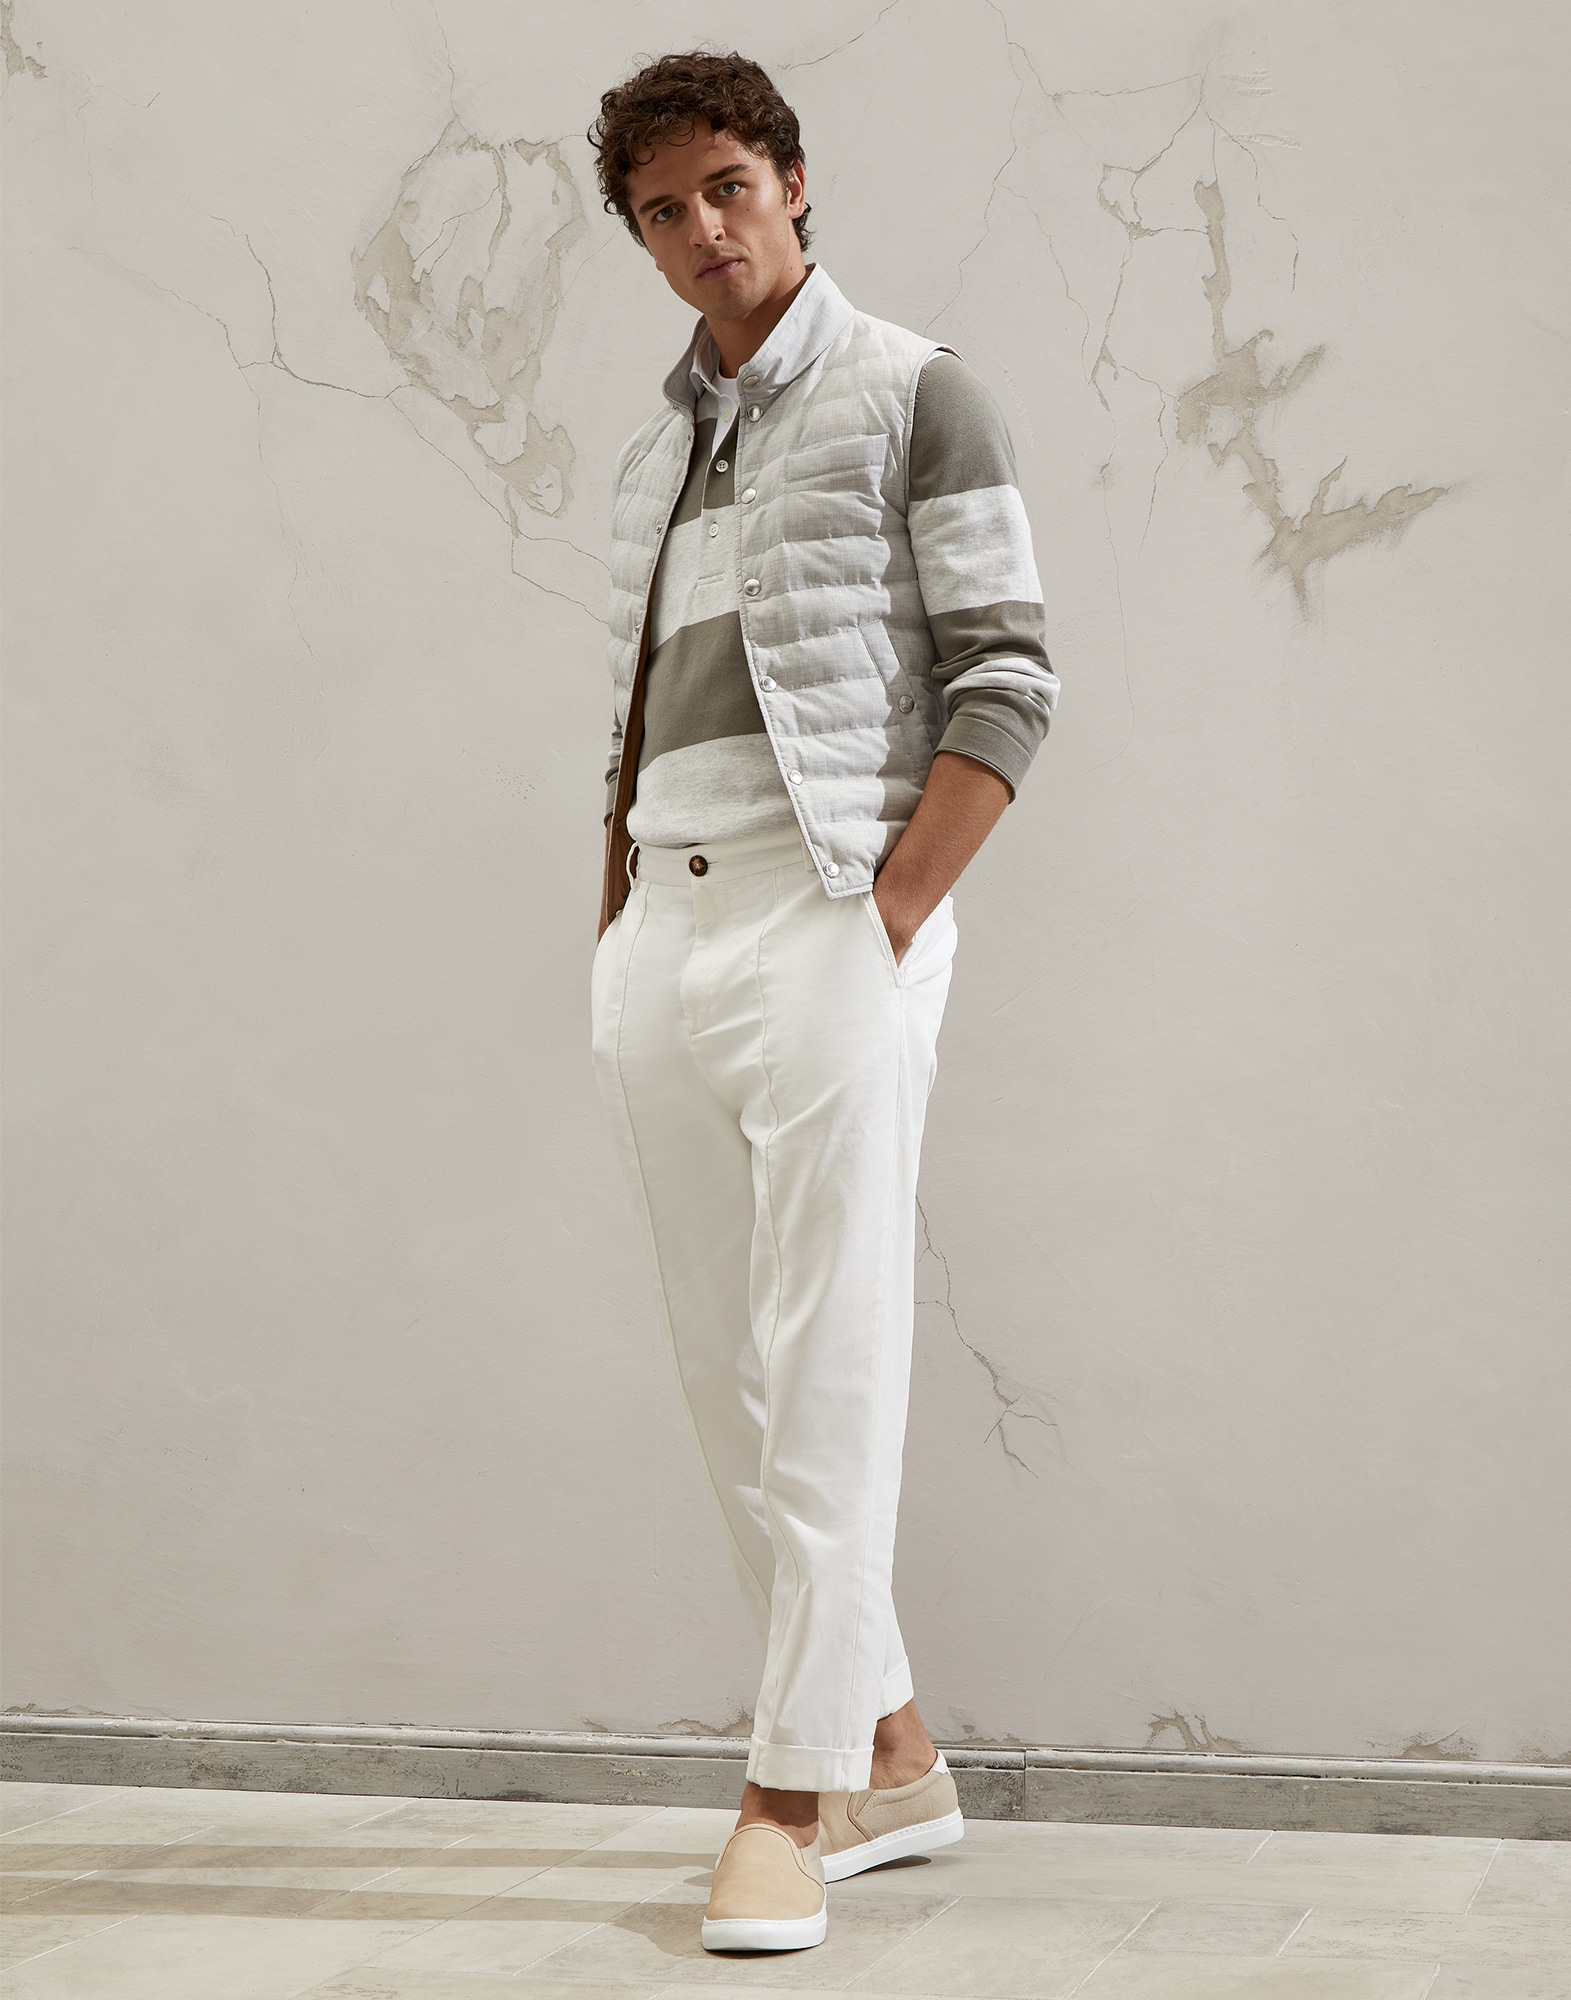 Polo-Style Sweater - Full look